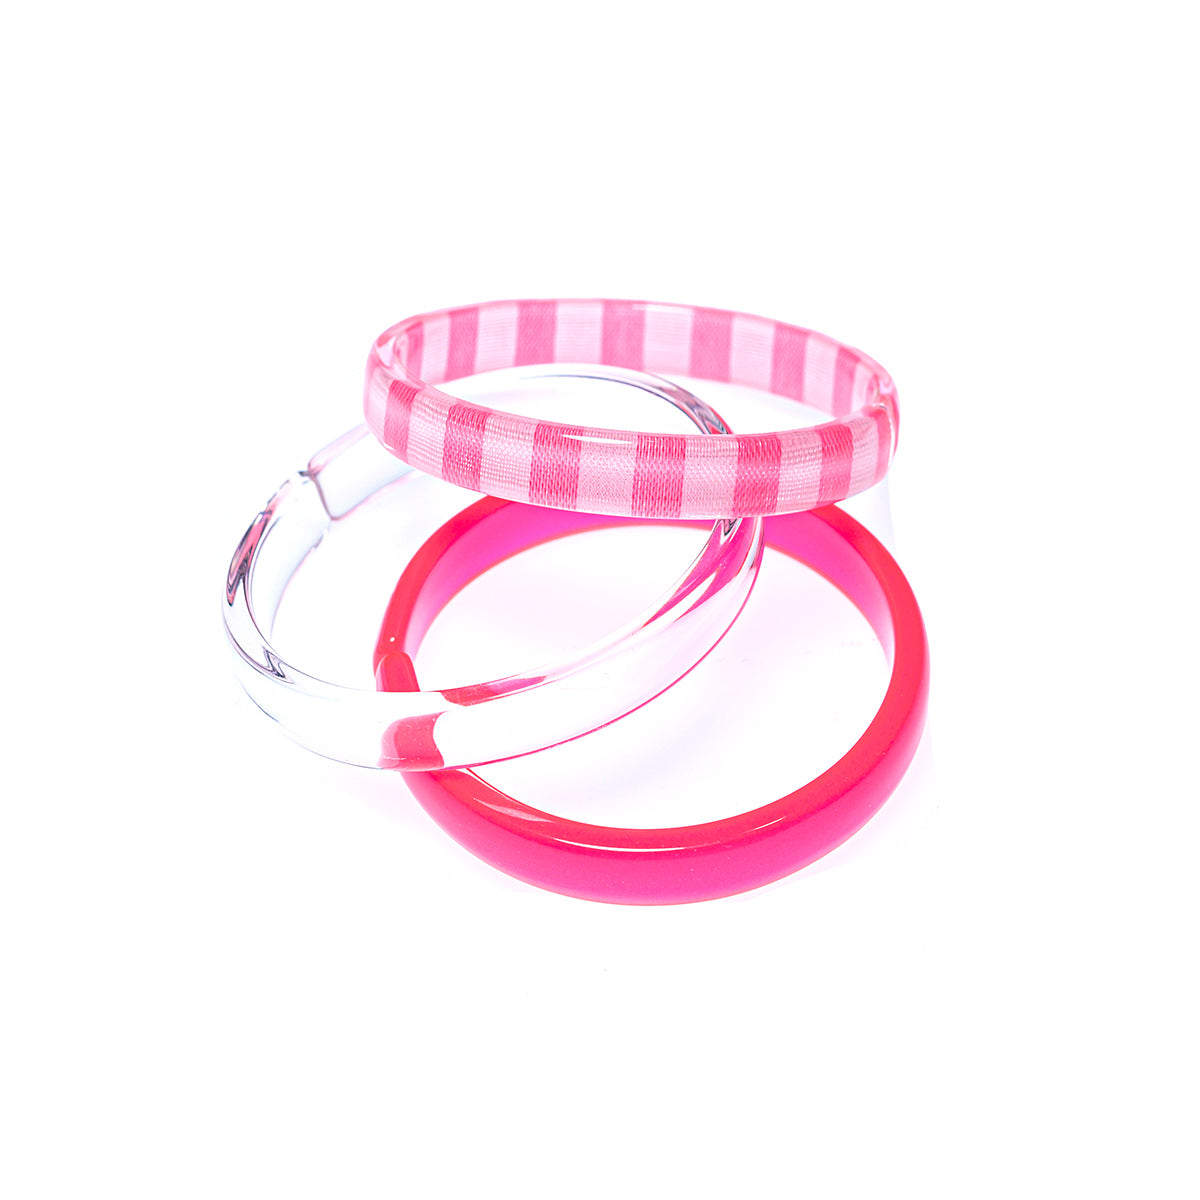 Bracelets Mix - Neon Pink + Clear + Pink Stripe -  Lilies & Roses NY